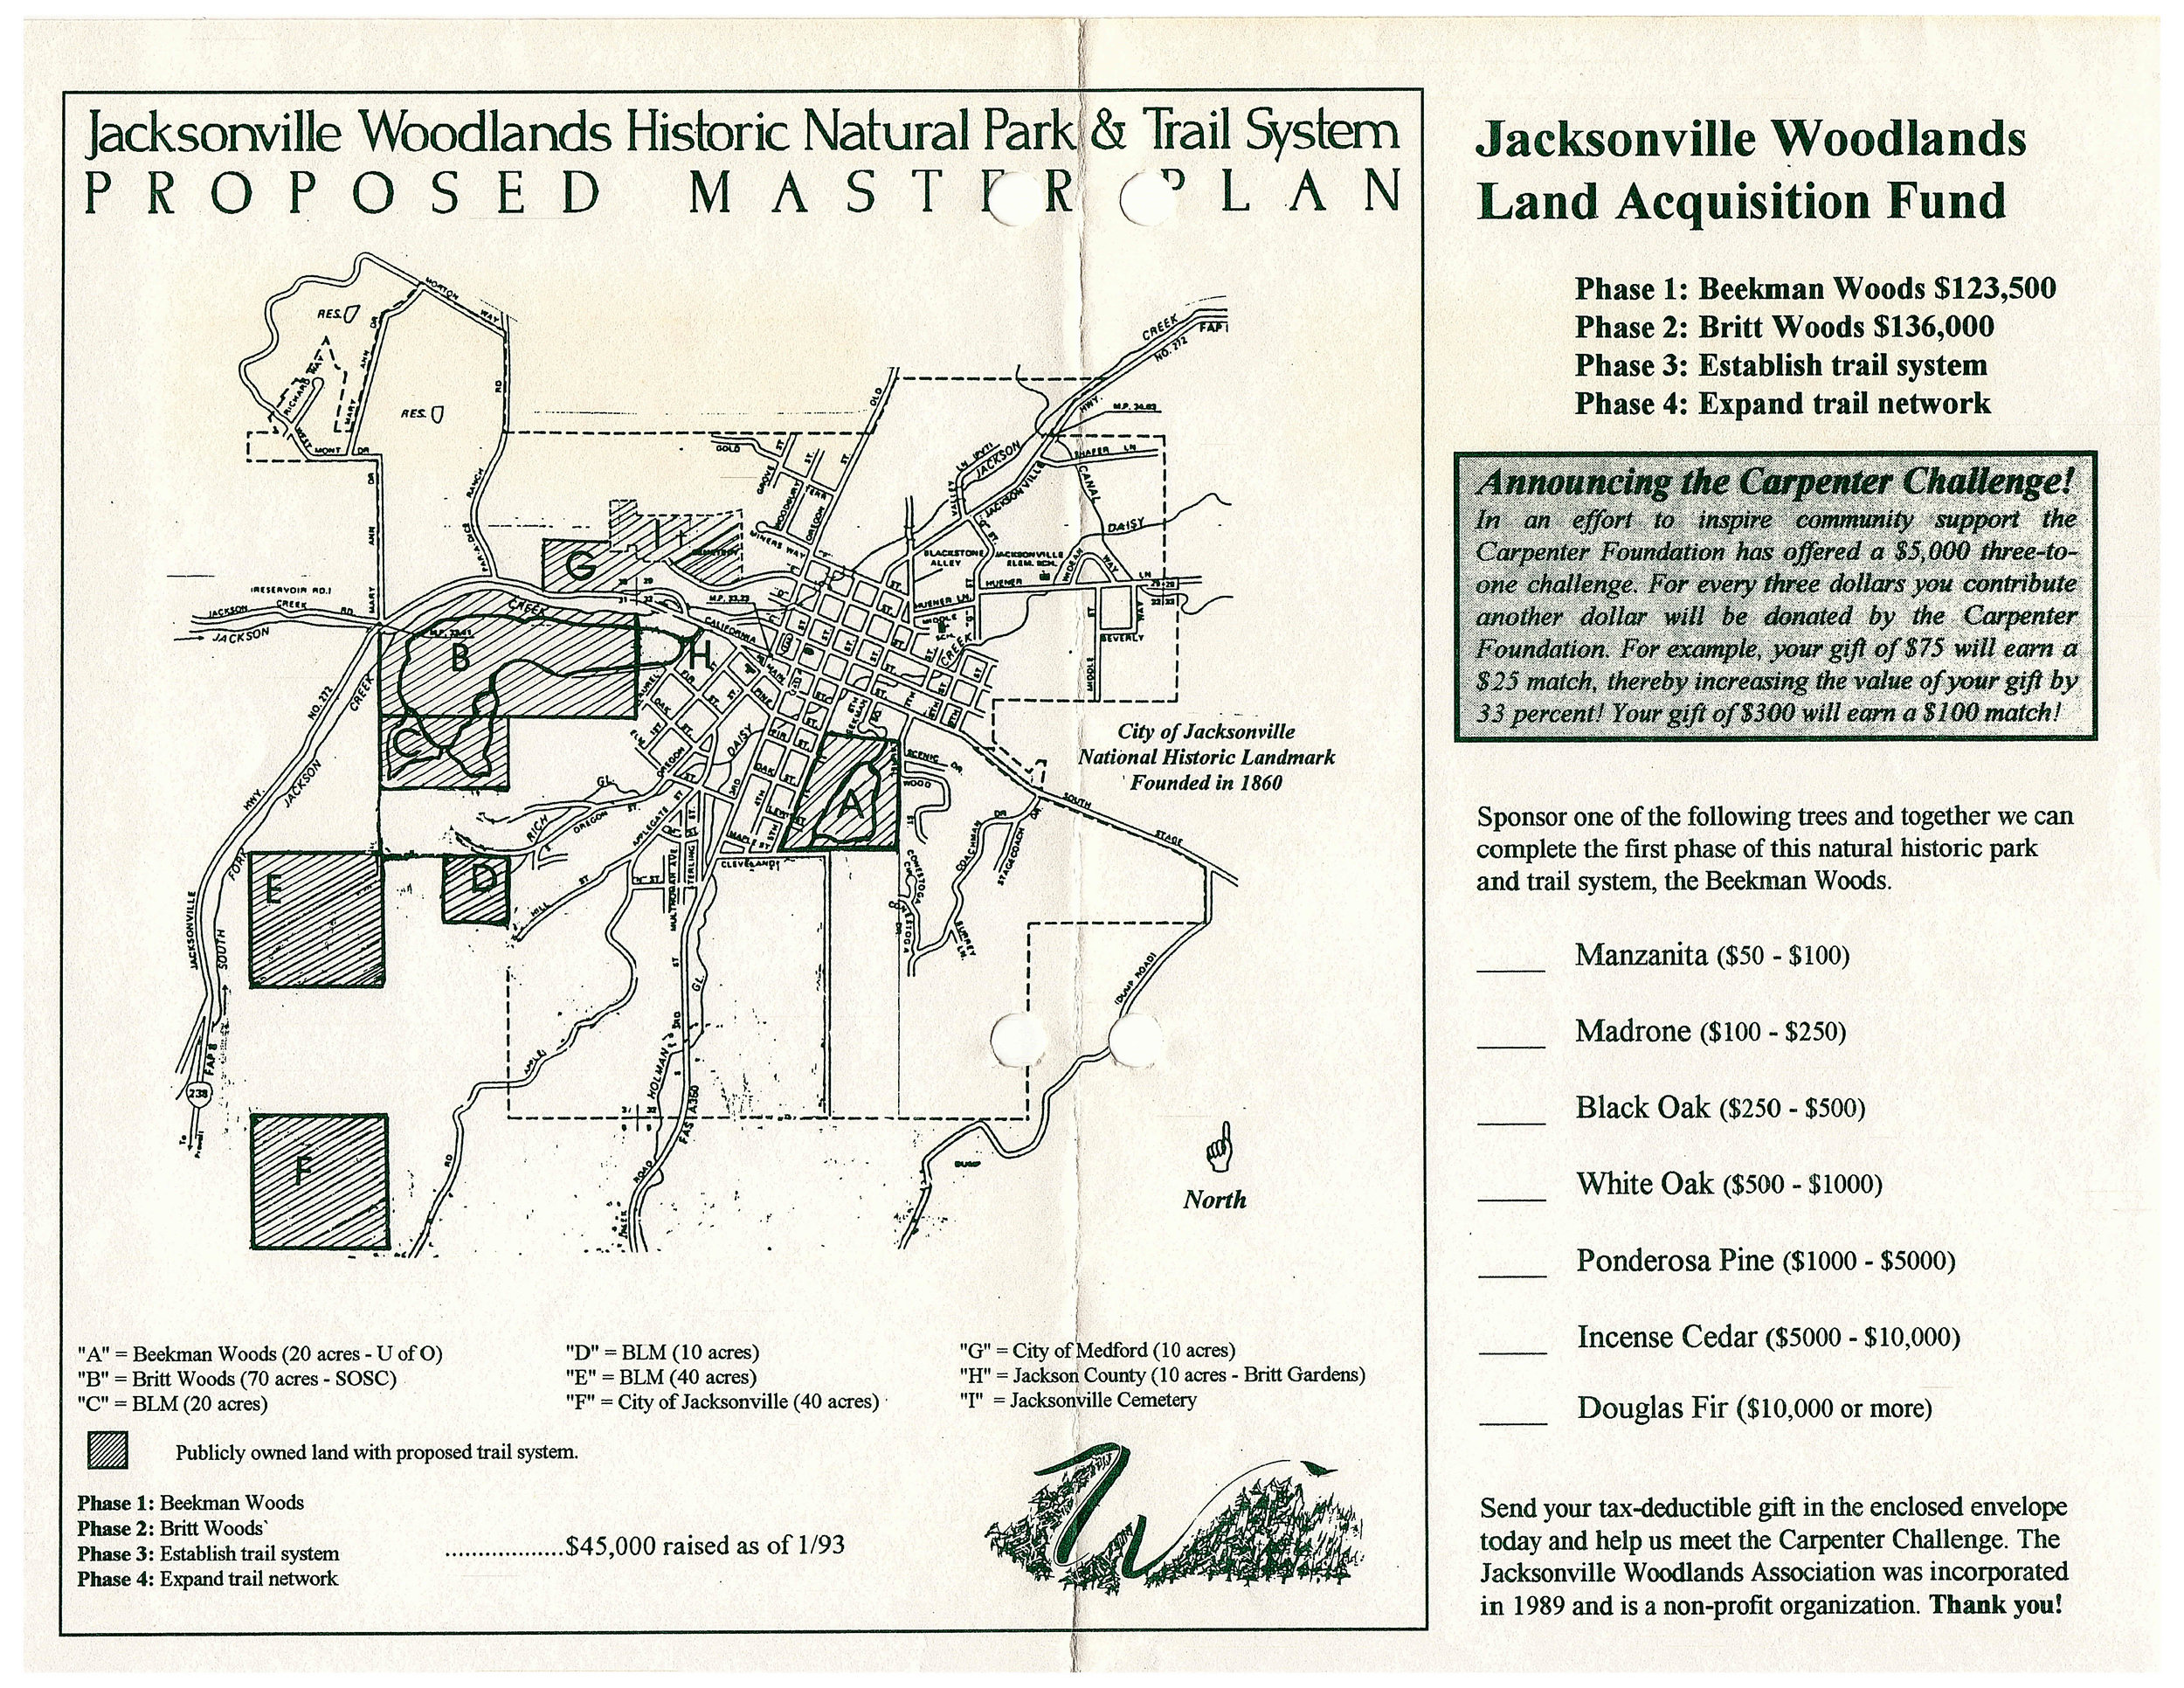 Woodlands community-driven campaign fundraiser form with proposed conserved areas.